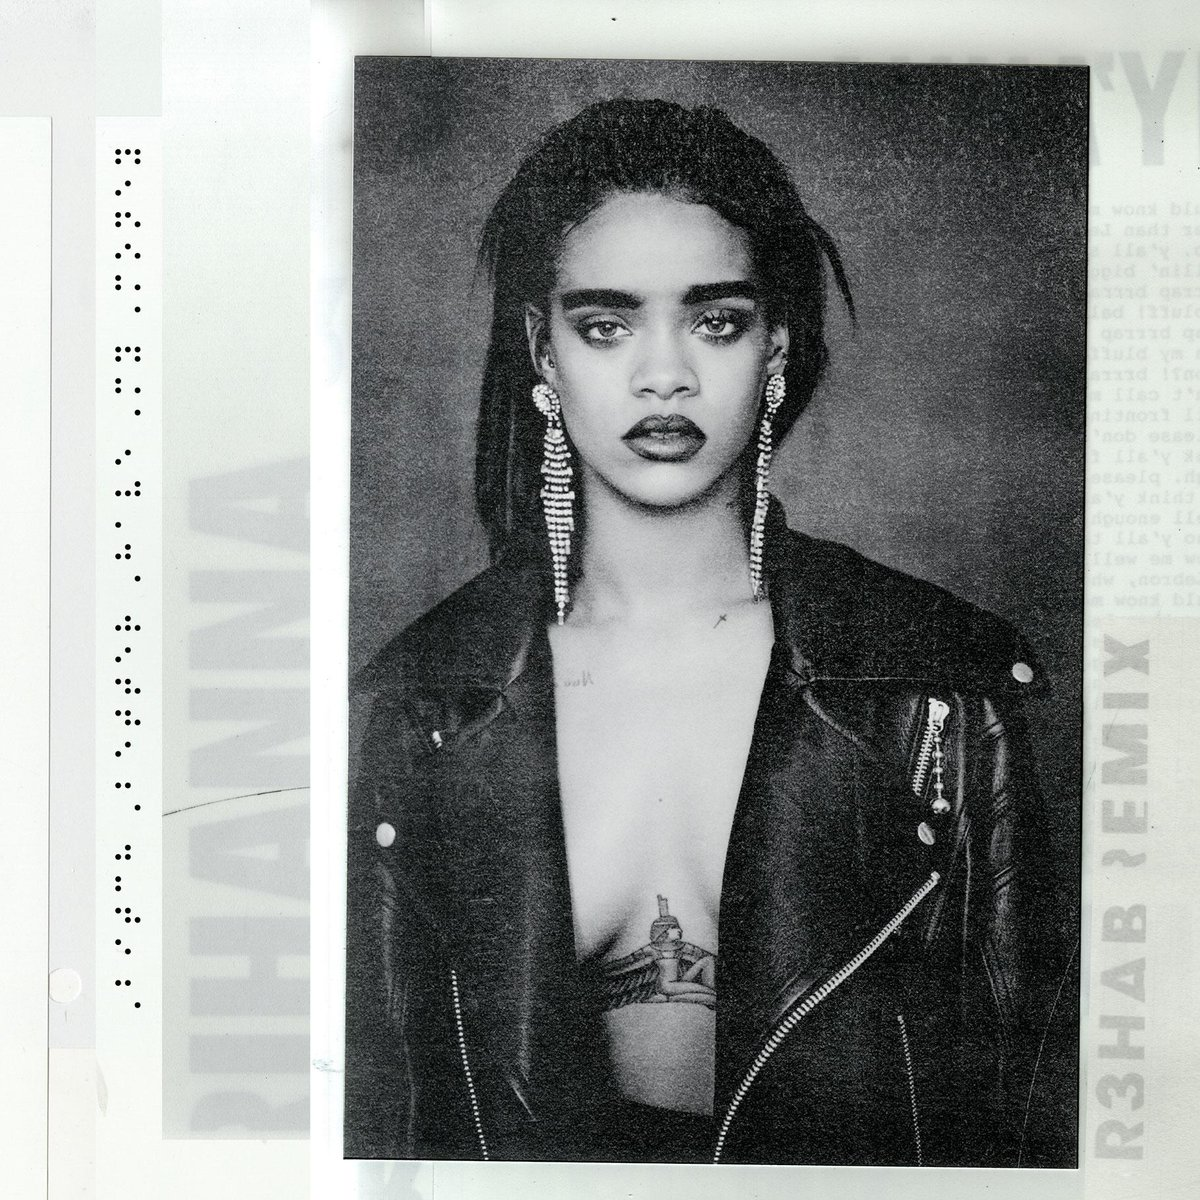 Rihanna - Bitch Better Have My Money (R3hab Remix) http://t.co/a5oReF06Wa http://t.co/8oxxD51Jhi